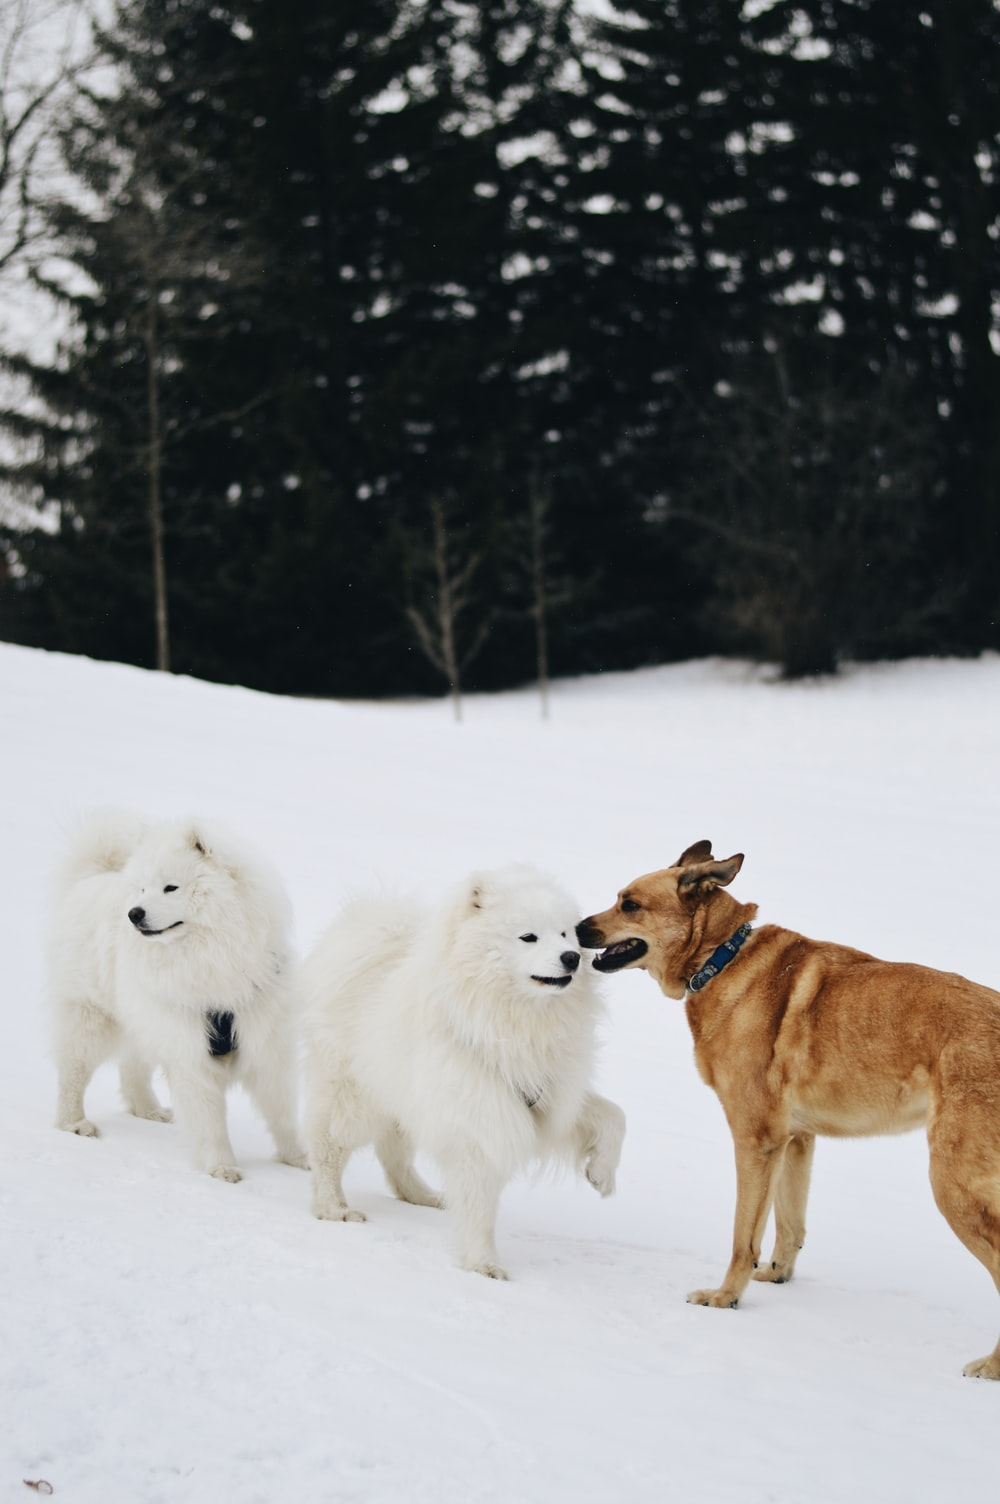 brown and white dogs on snow covered ground during daytime